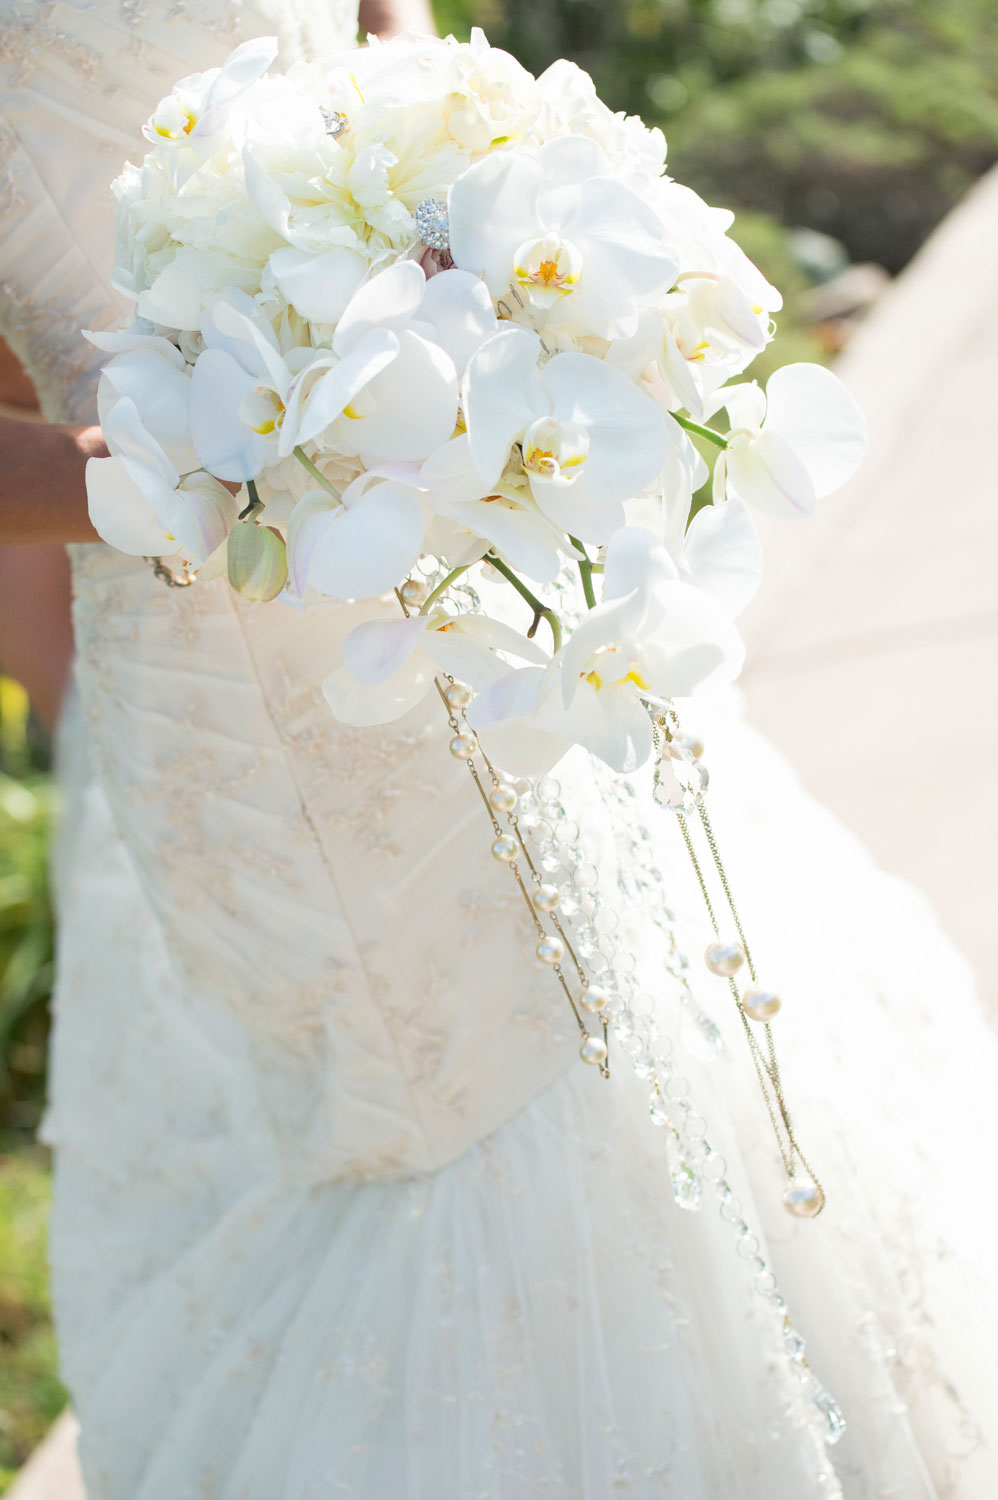 13 White Bridal Bouquets From Classic To Unique